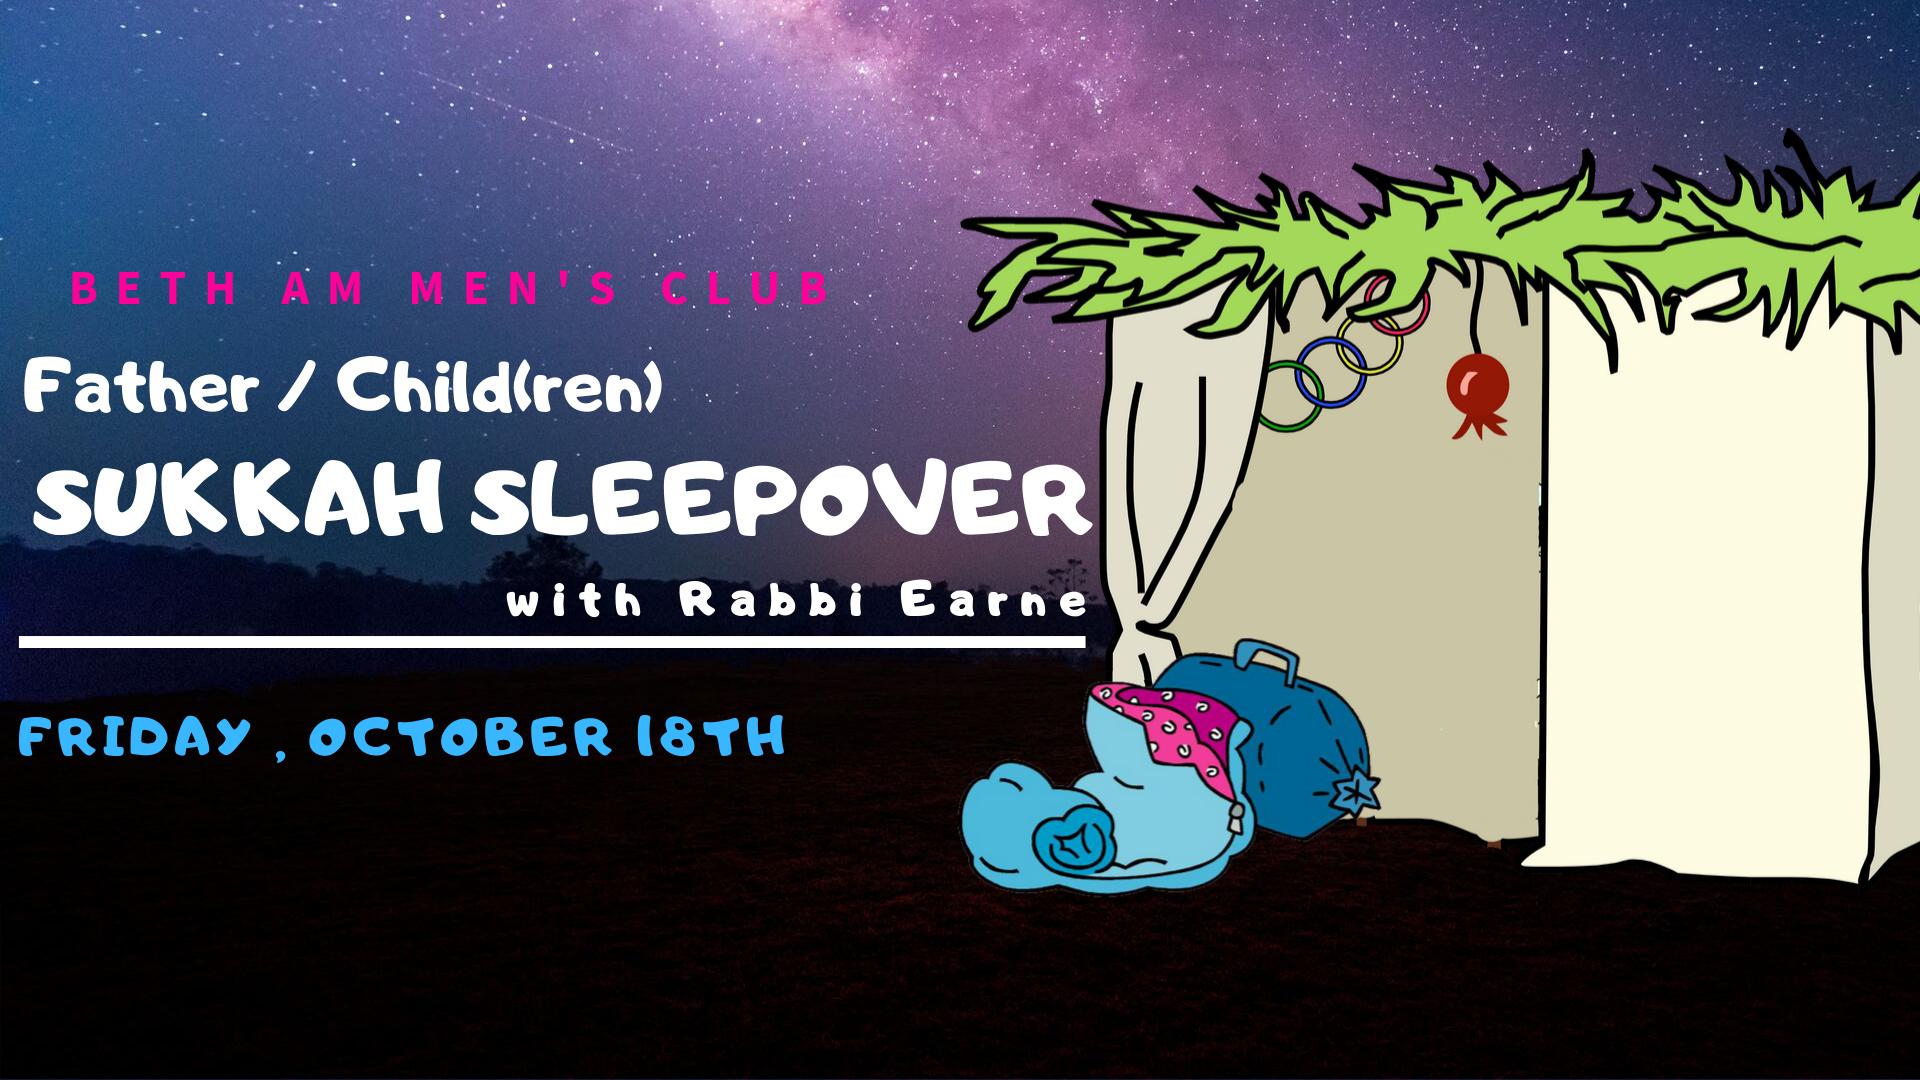 Banner Image for Annual Father/Child[ren] Sukkah Sleepover with Rabbi Earne